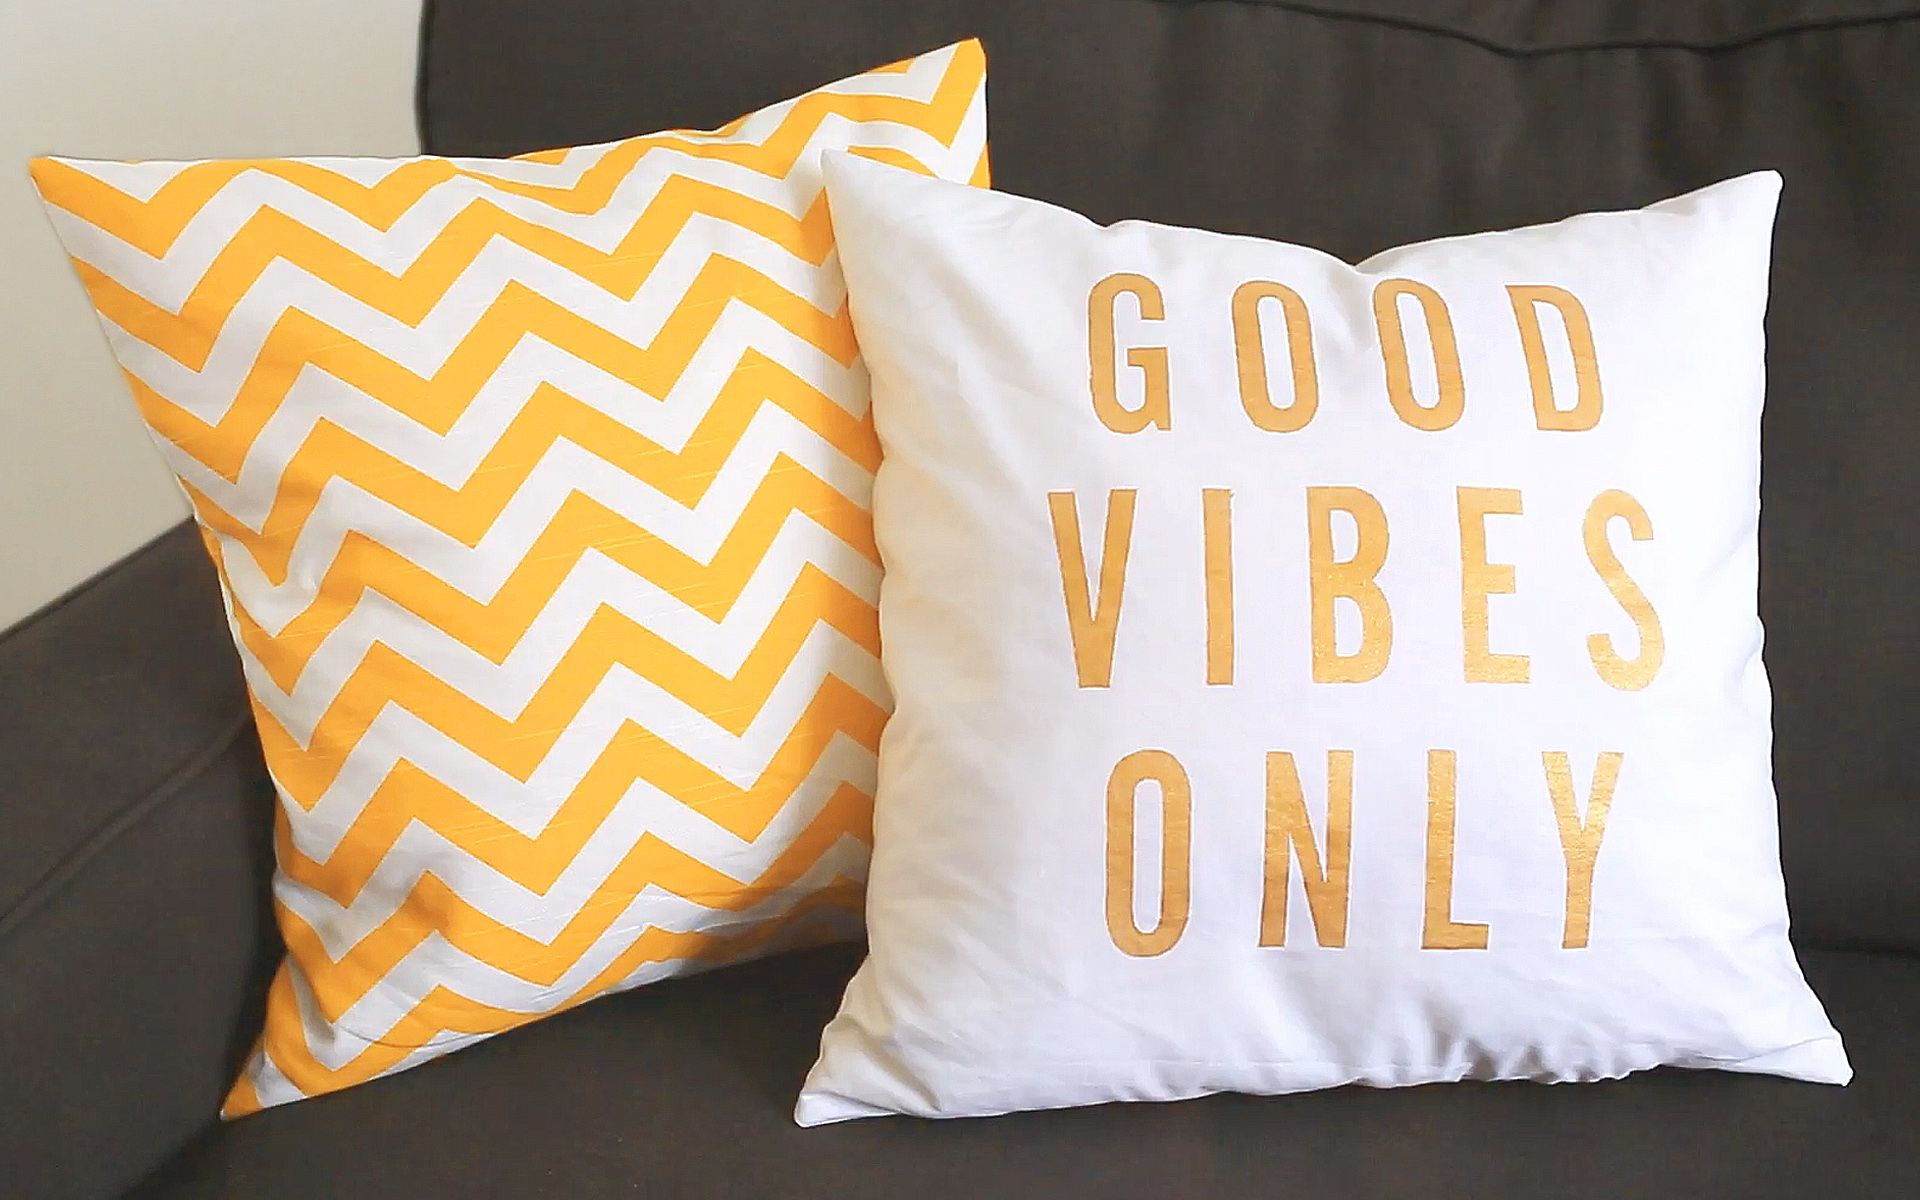 Diy Pillow Cases How To Screen Print Your Own Text And